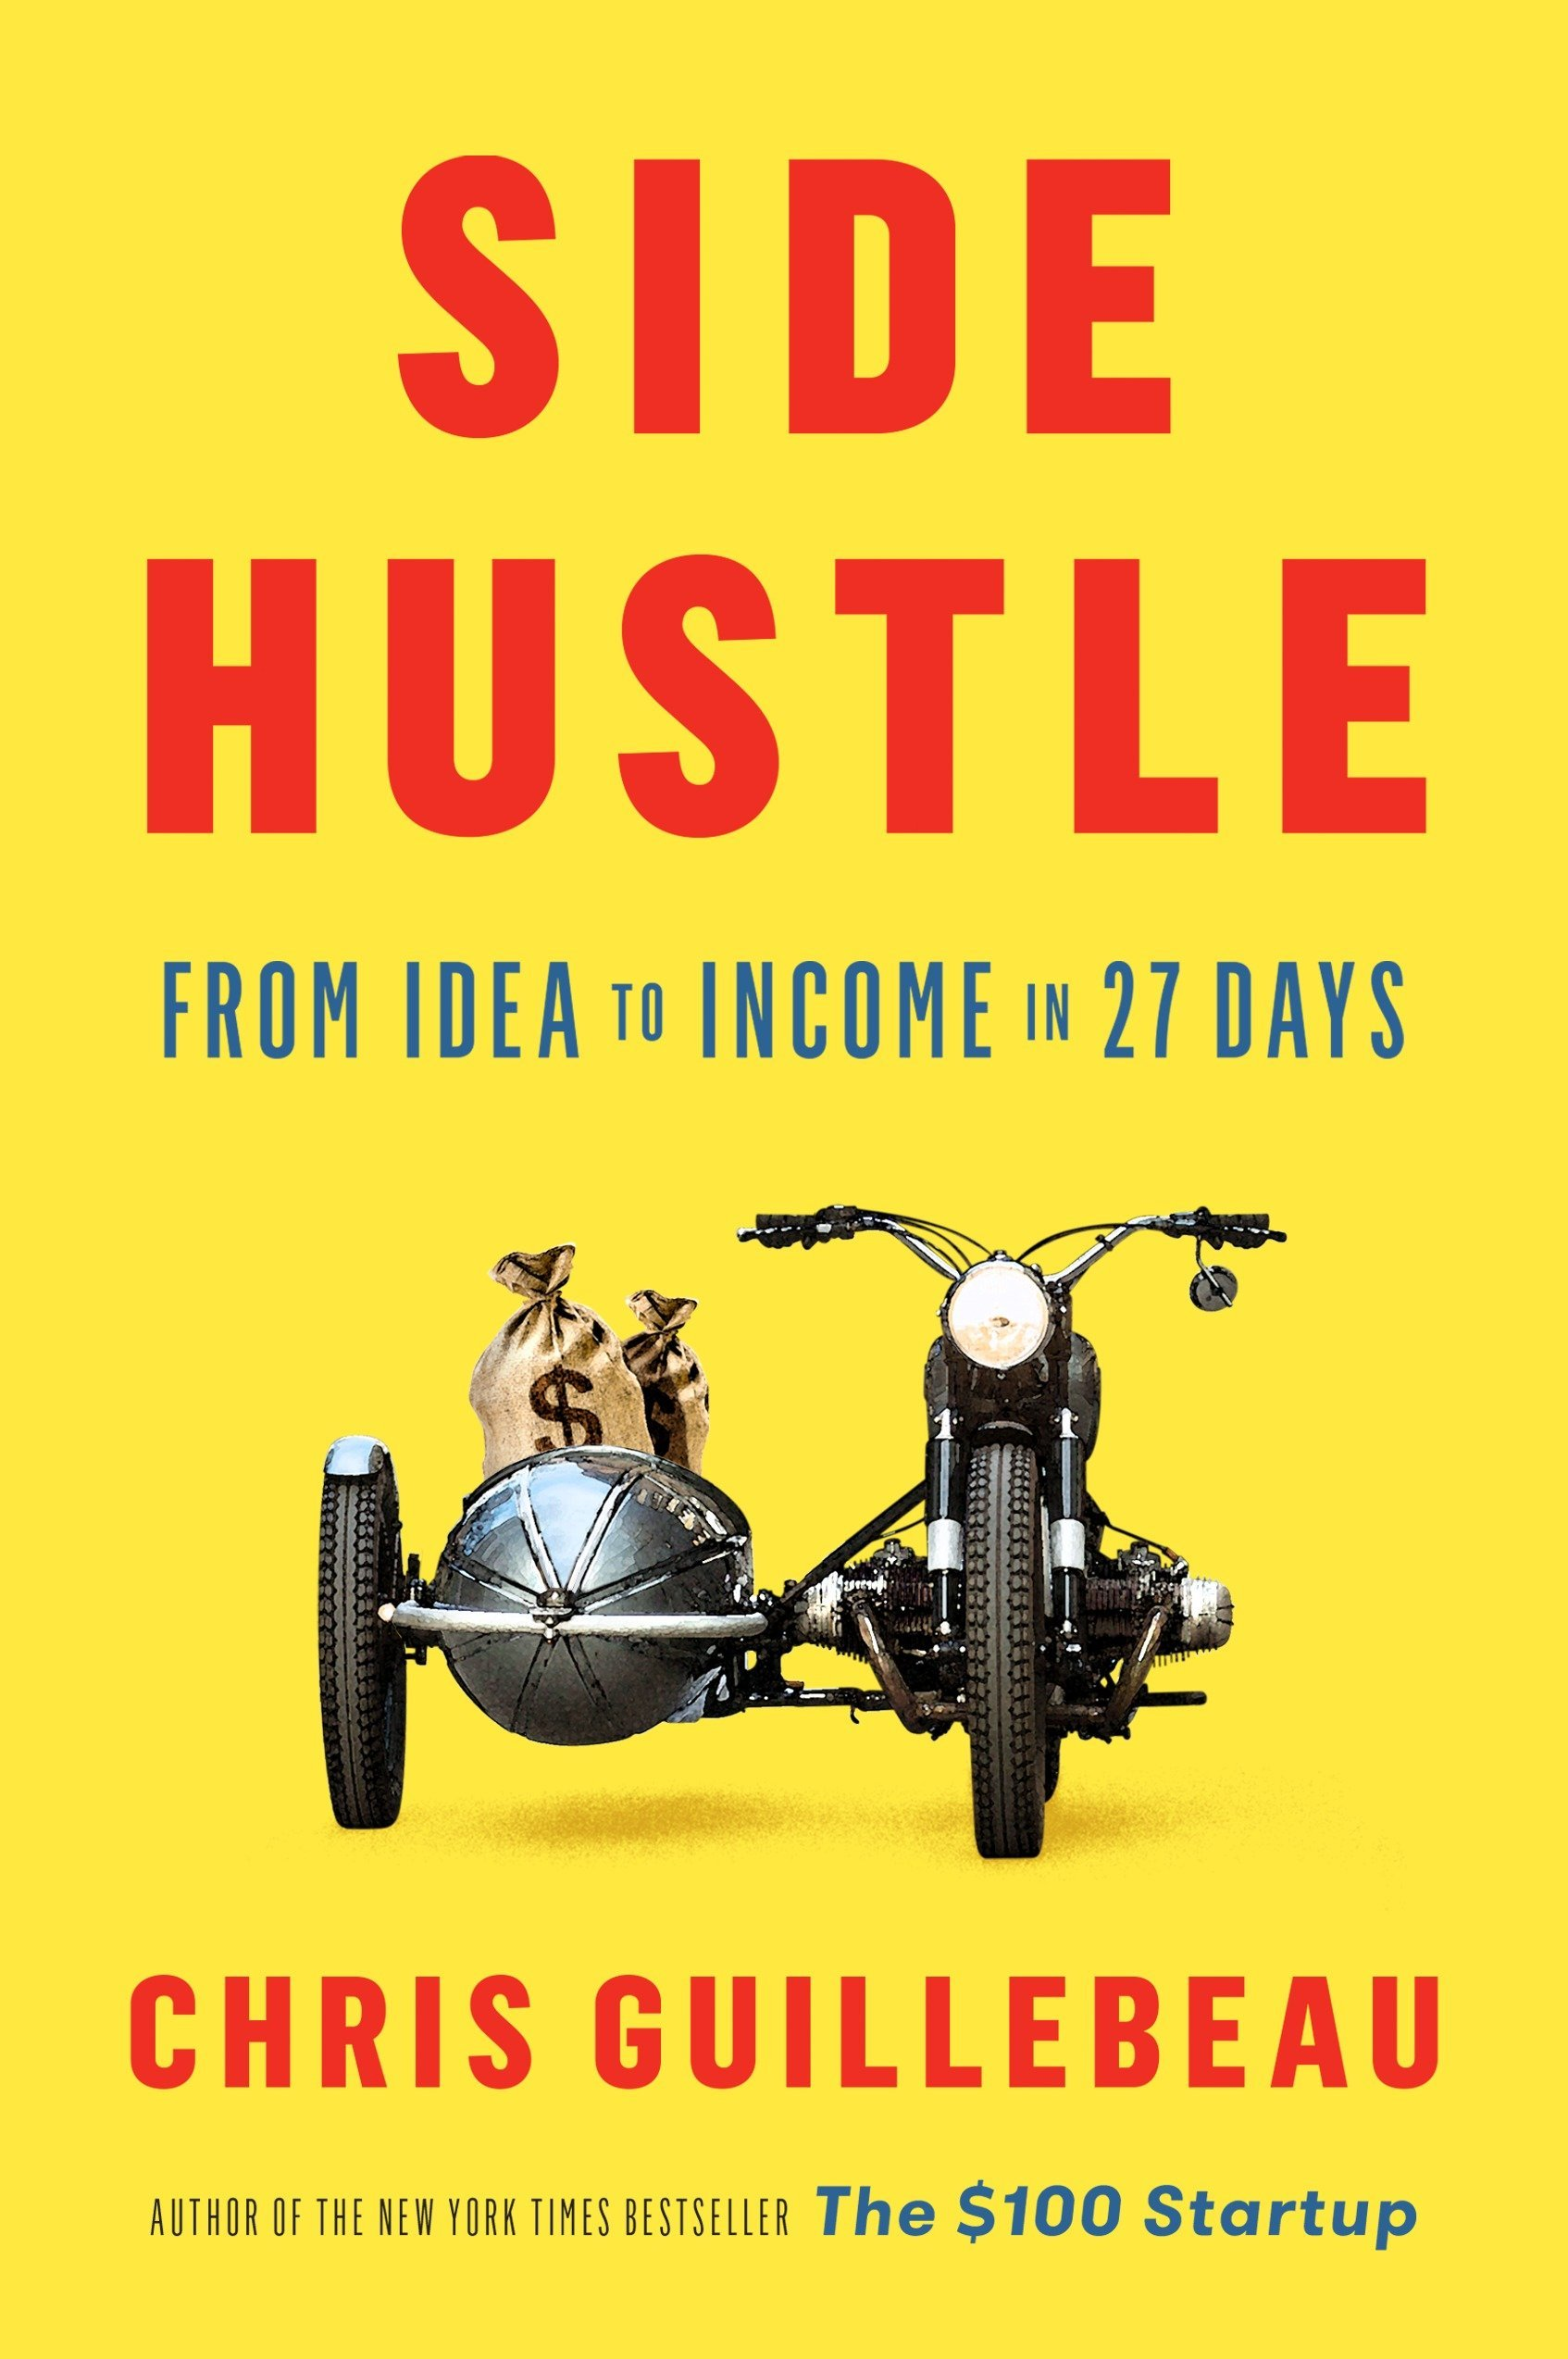 Amazon.com: Side Hustle: From Idea to Income in 27 Days ...